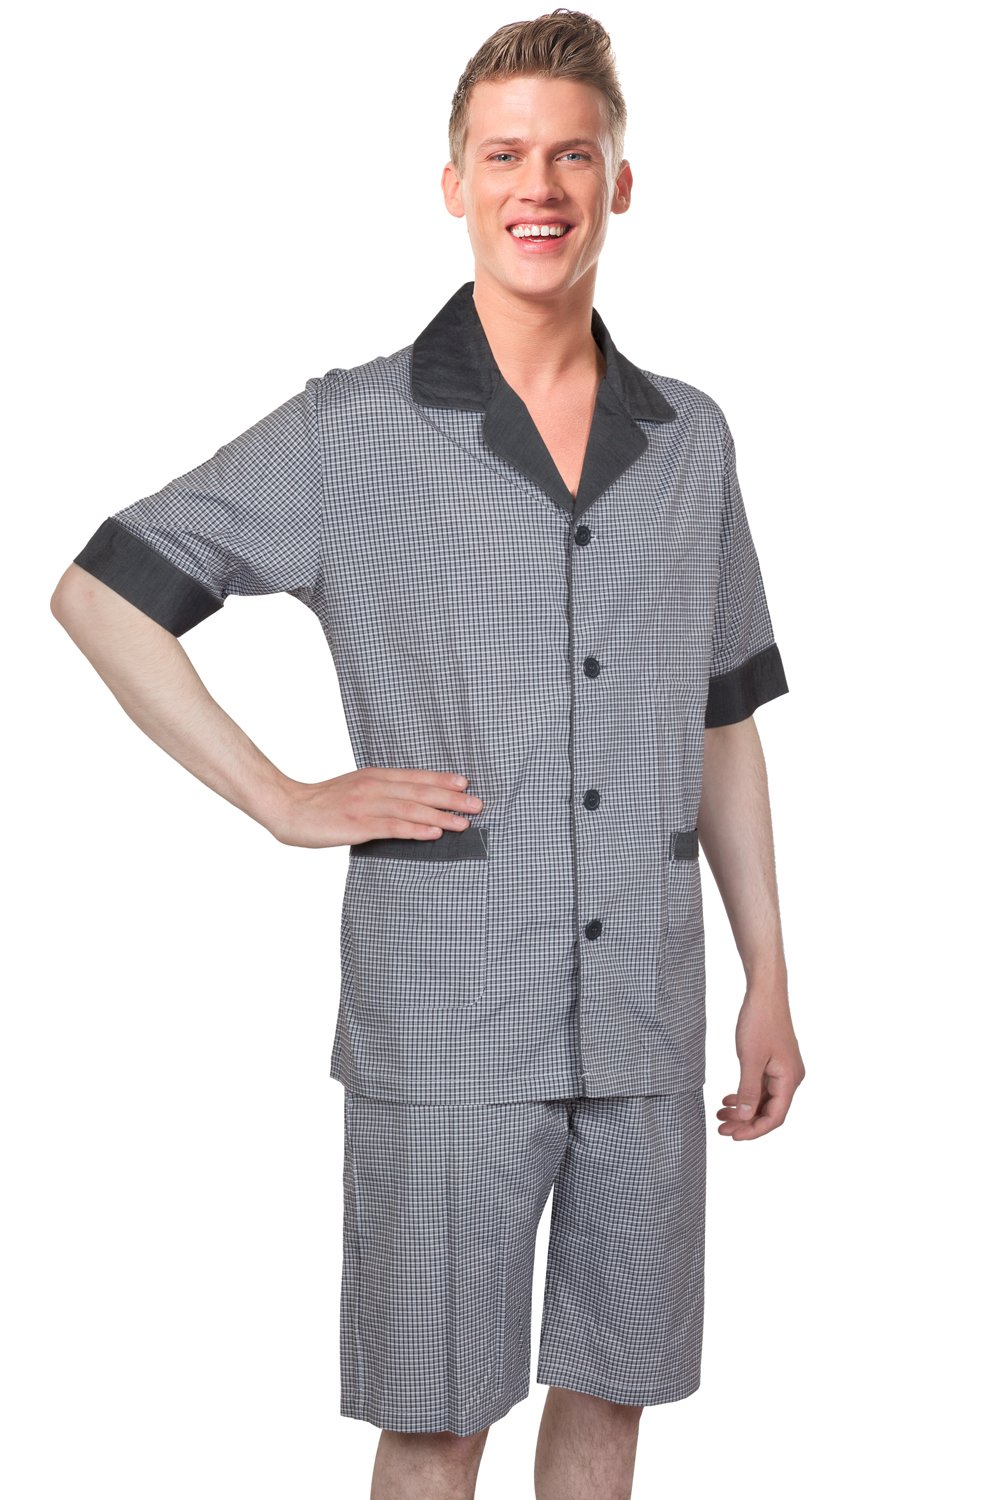 Benson & Brown Soft Woven Cotton Blend Men Short Pajamas Sleepwear/Loungewear Set